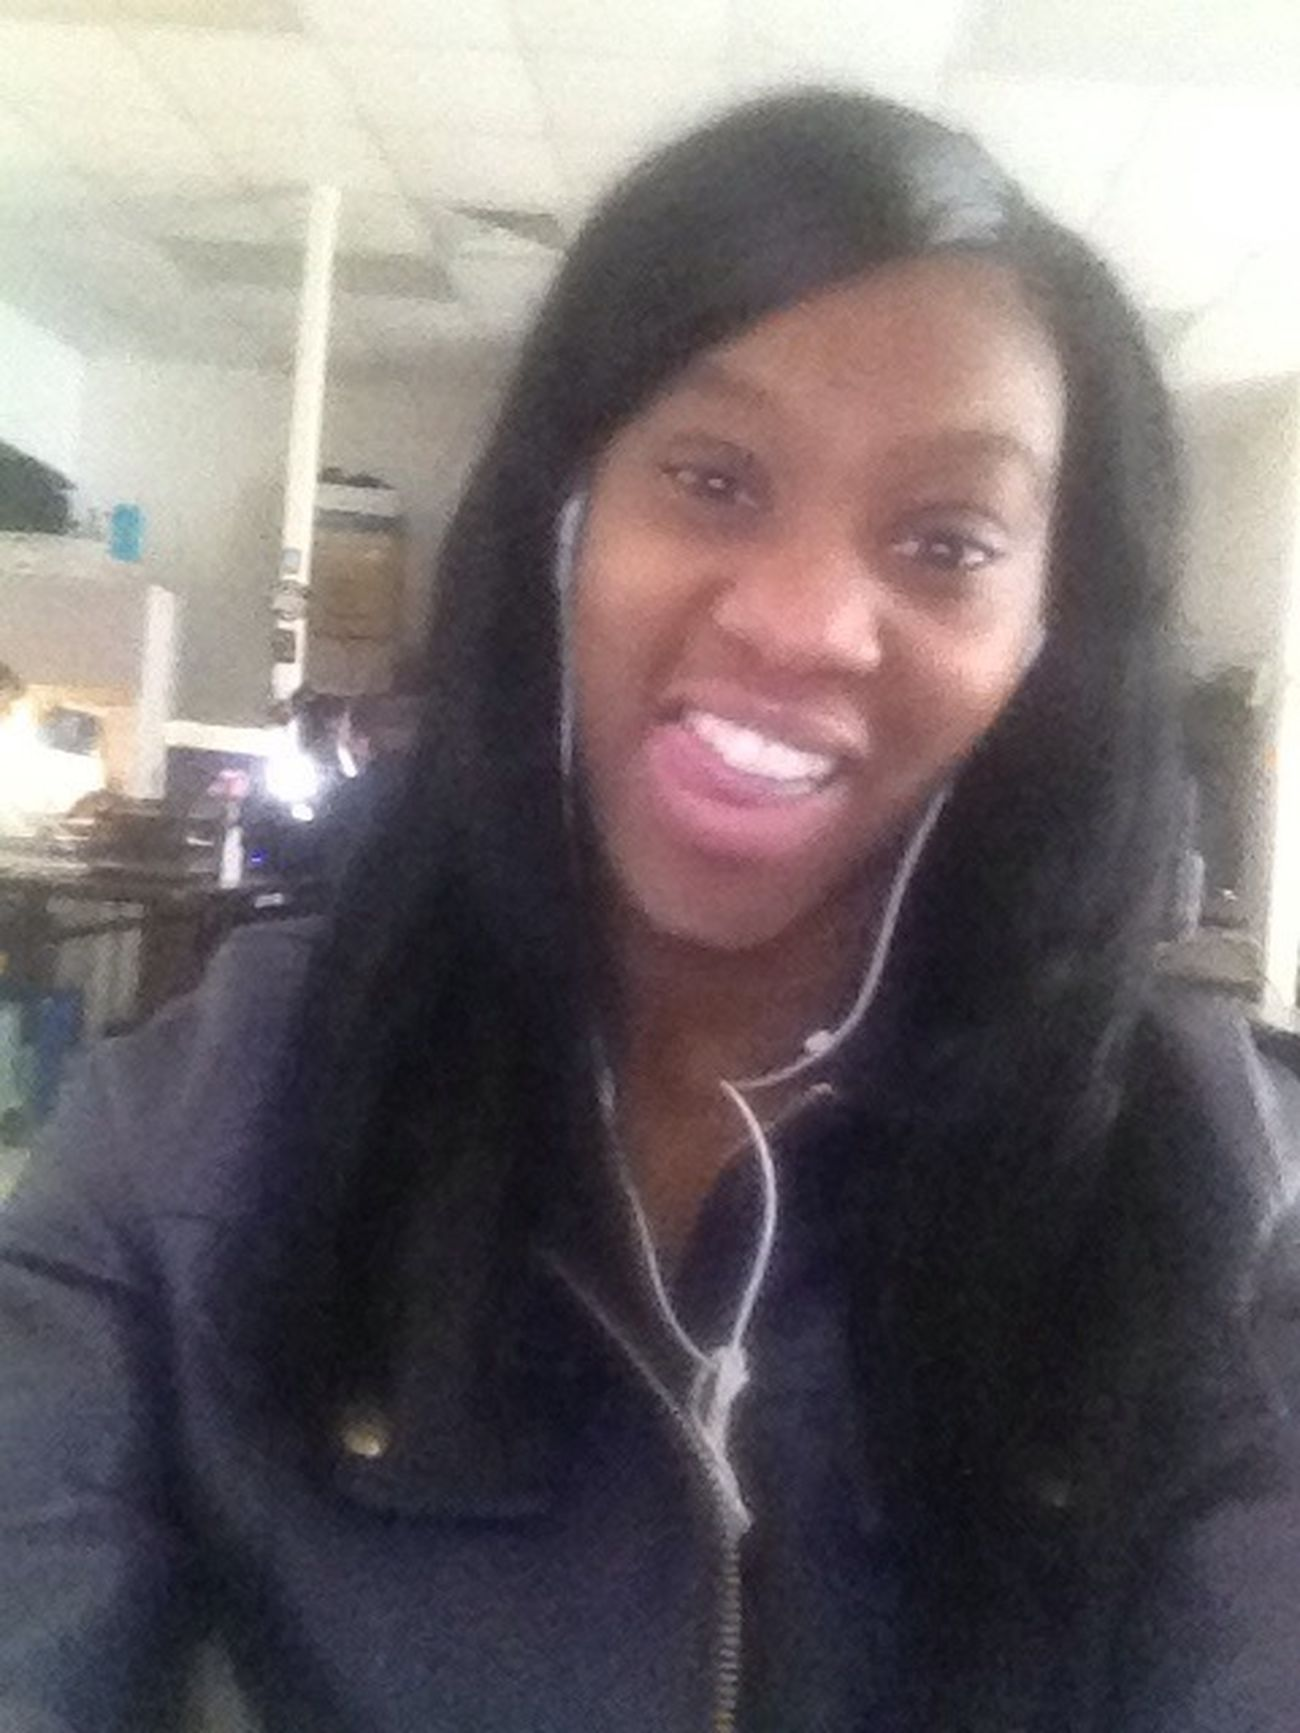 Acting crazy in computer class